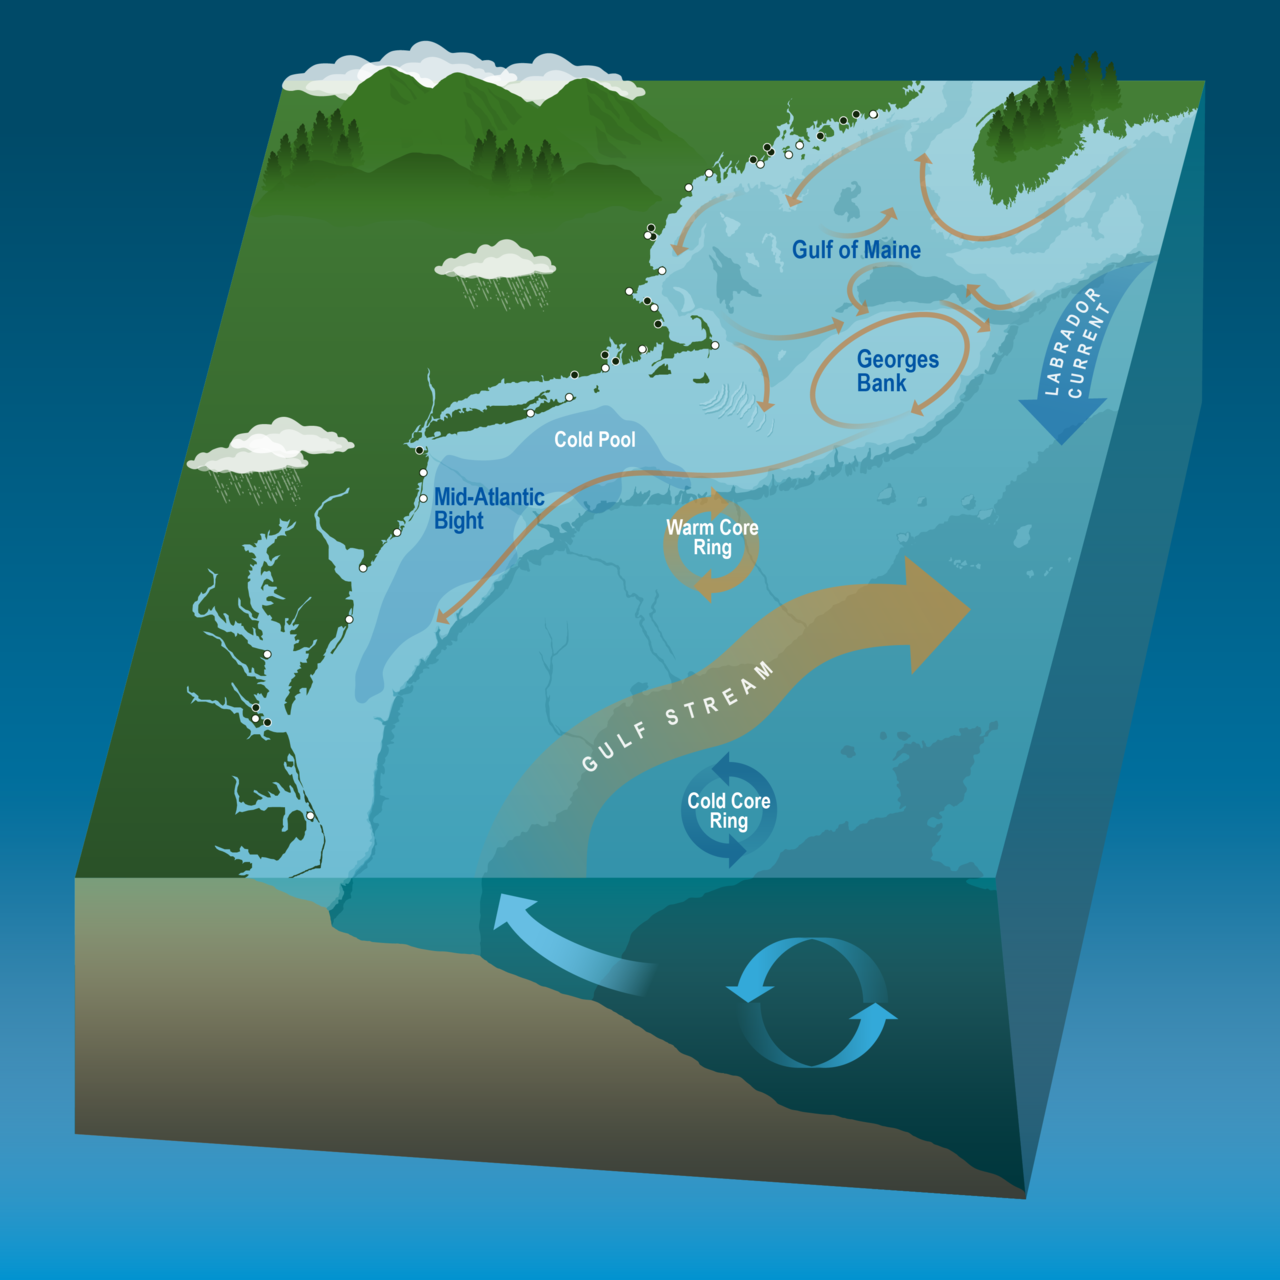 A map of the Northeast U.S. Continental Shelf ecosystem showing the Gulf of Maine in the north, Georges Bank east of Cape Cod, and Mid-Atlantic Bight in the south. The image includes the Gulf Stream and Labrador Current, examples of warm and cold rings, and the cold pool in the Mid-Atlantic Bight region.